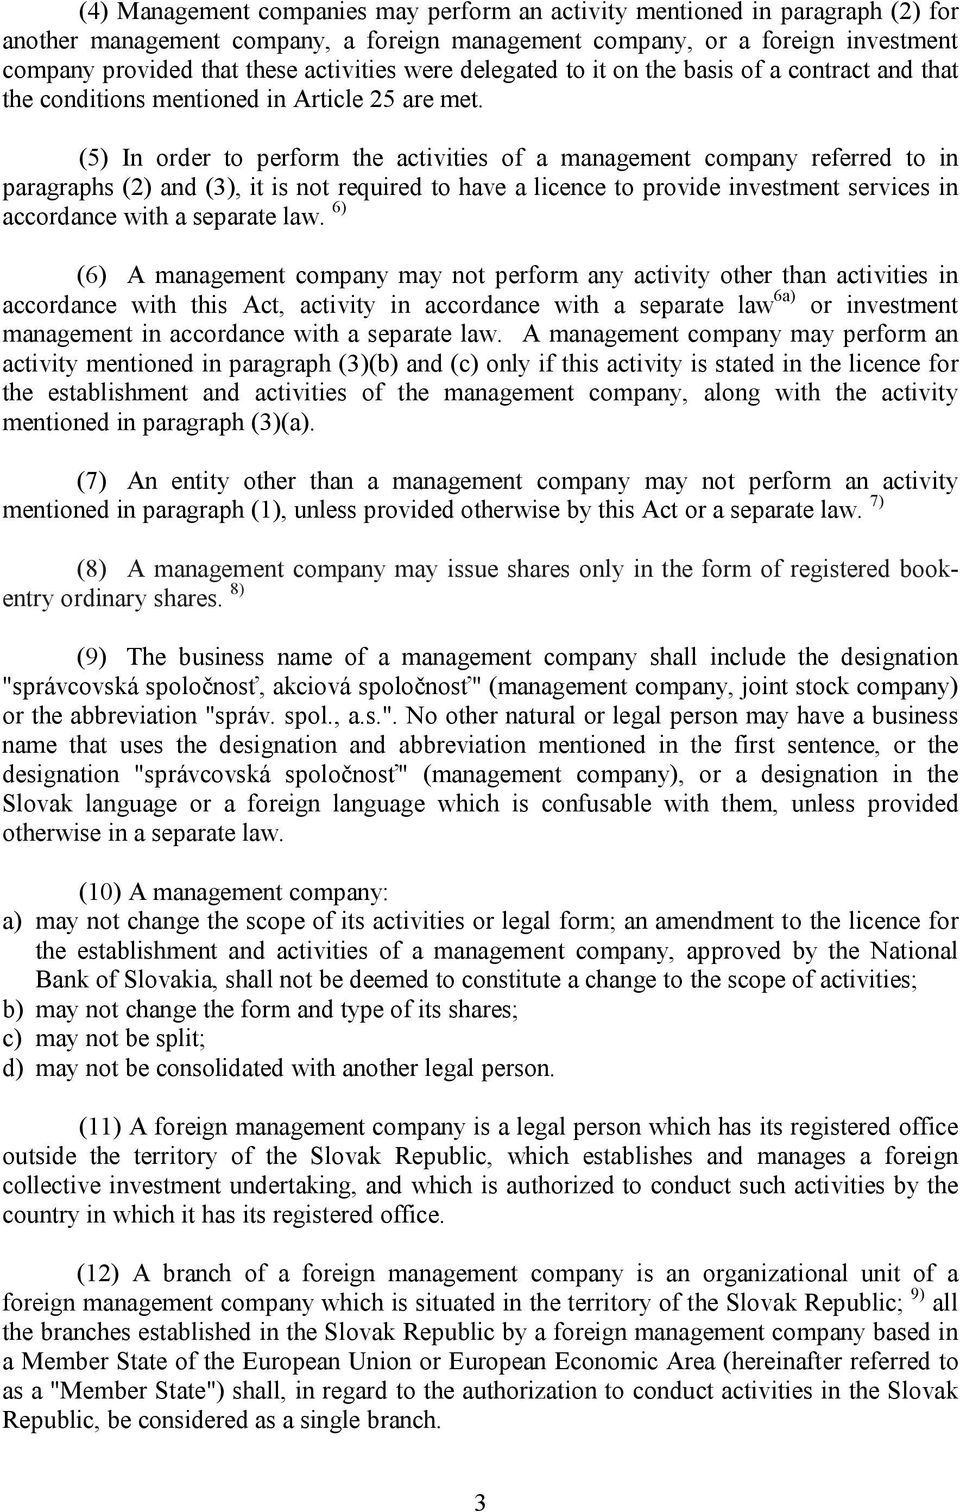 (5) In order to perform the activities of a management company referred to in paragraphs (2) and (3), it is not required to have a licence to provide investment services in accordance with a separate